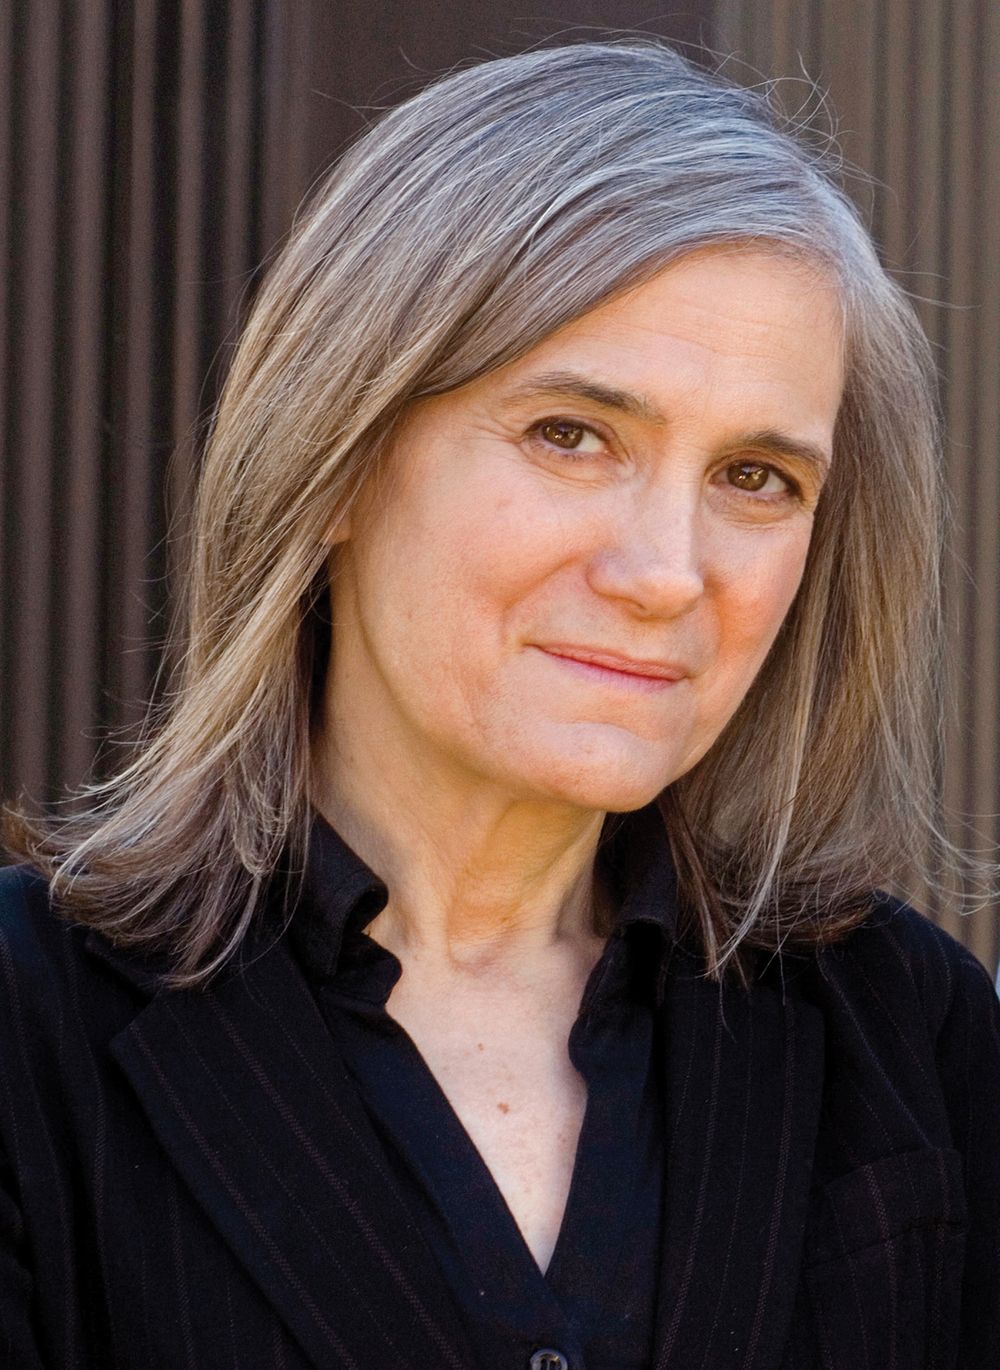 """Democracy Now!"" host Amy Goodman will speak at the Mateel Community Center in Redway April 16."